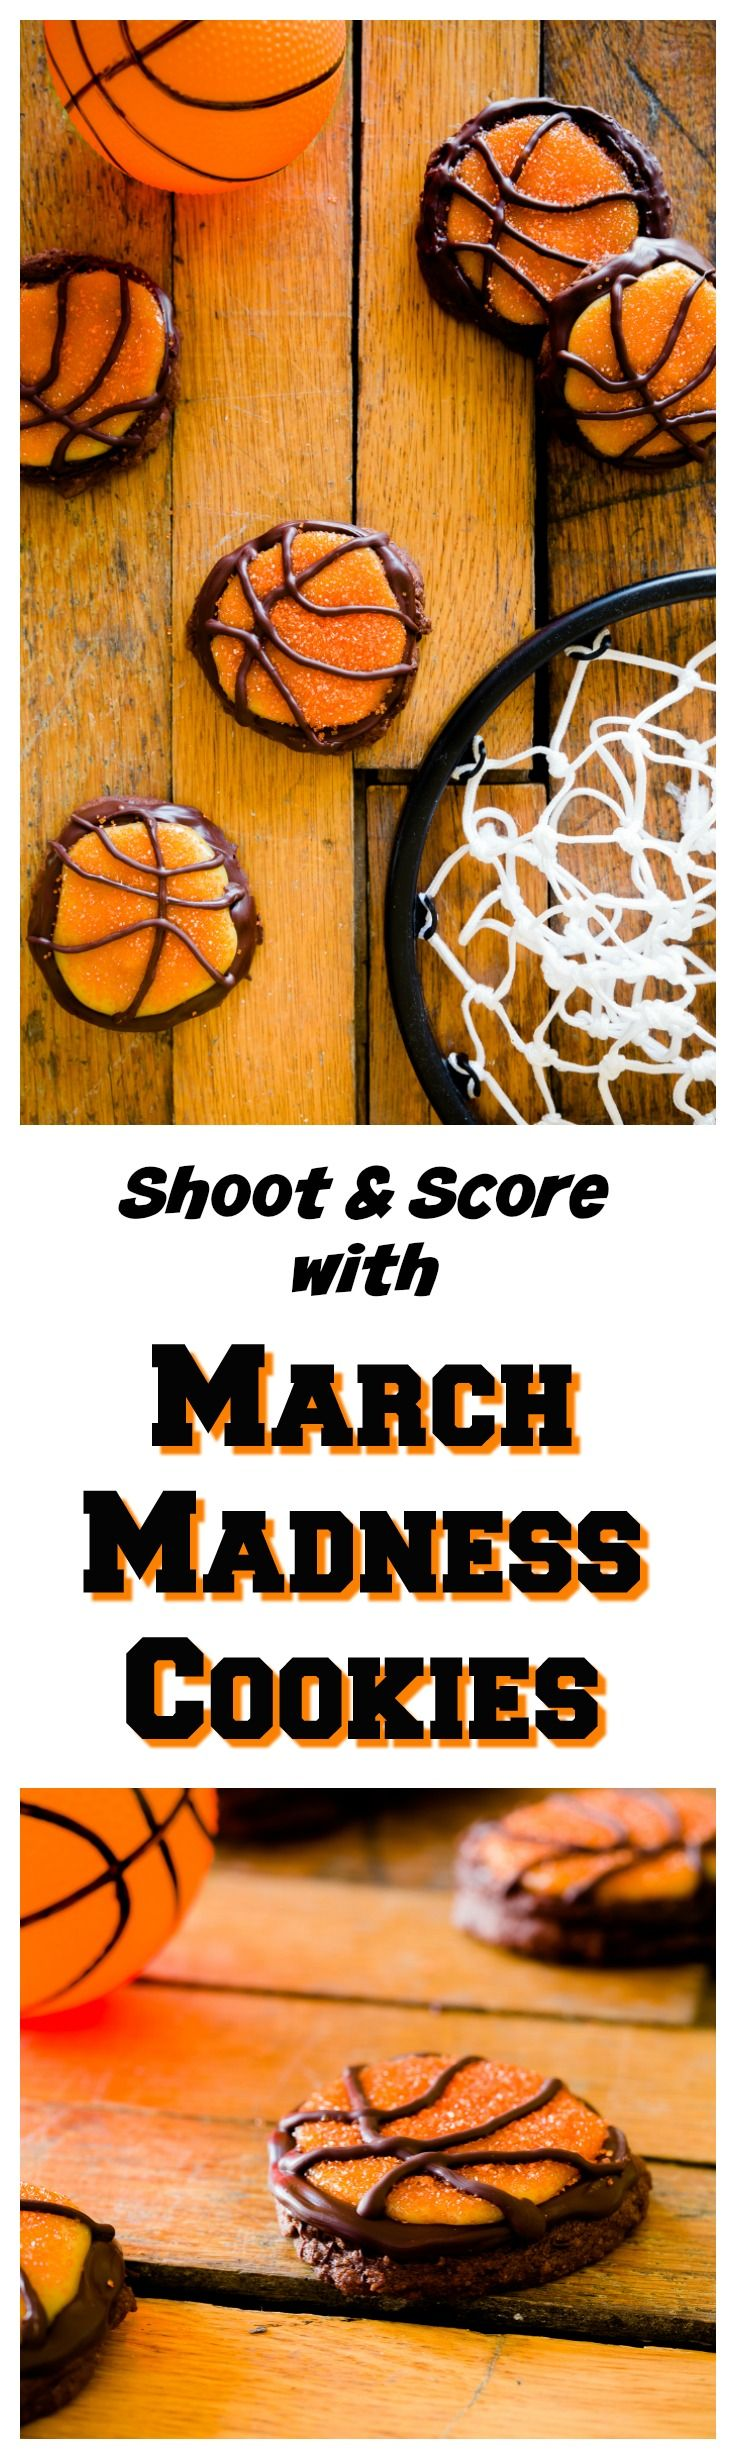 Shoot and Score with March Madness Cookies for your March Madness parties!